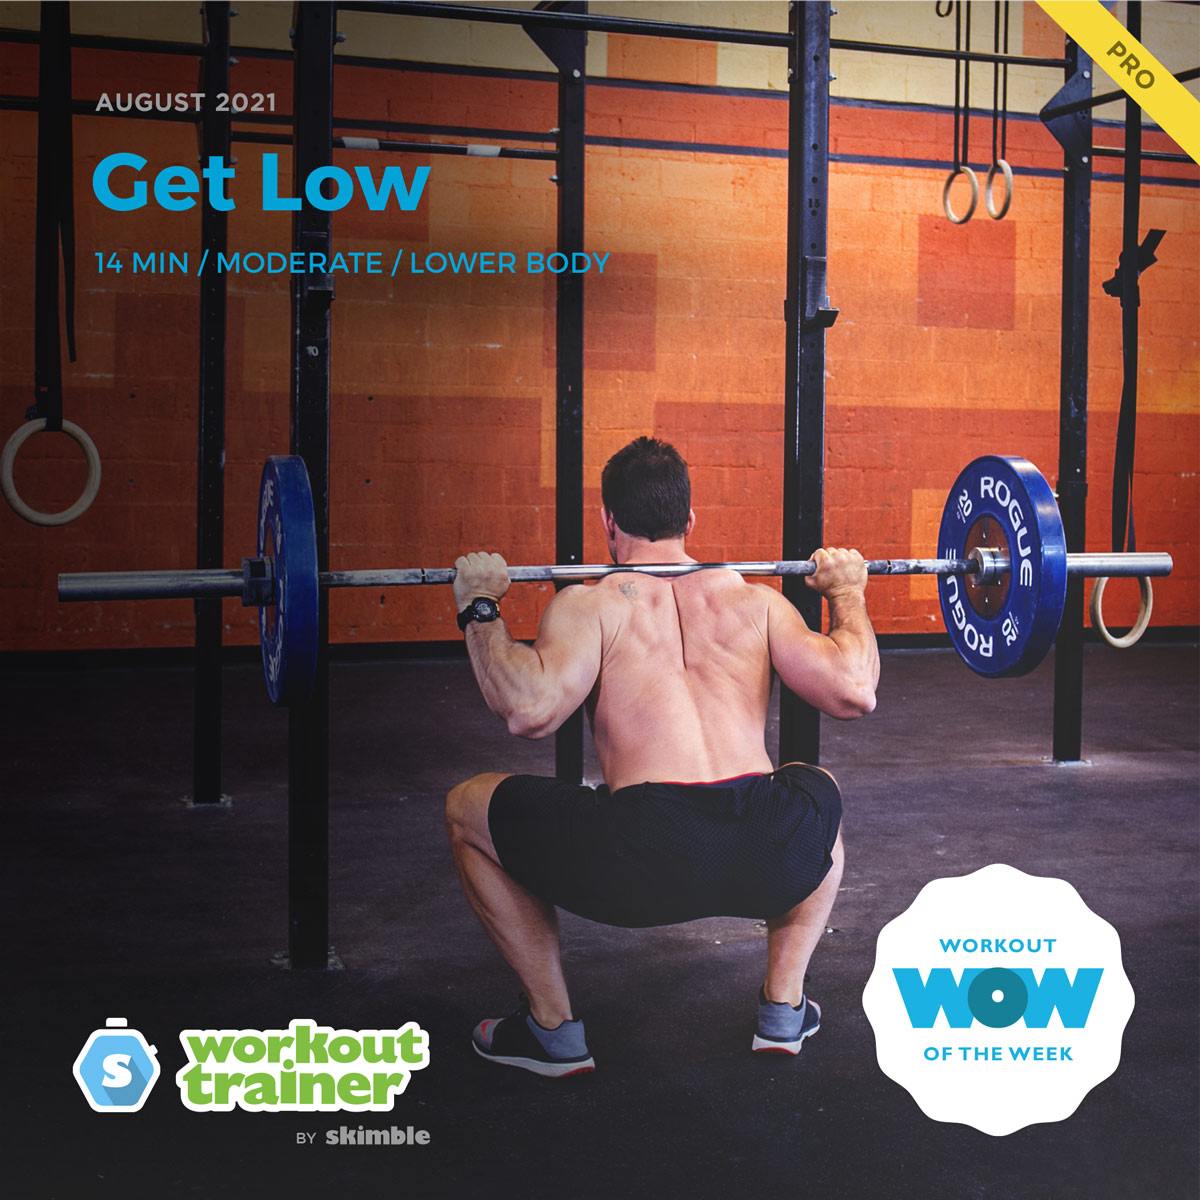 Male CrossFit Trainer doing Barbell Loaded Back Squats